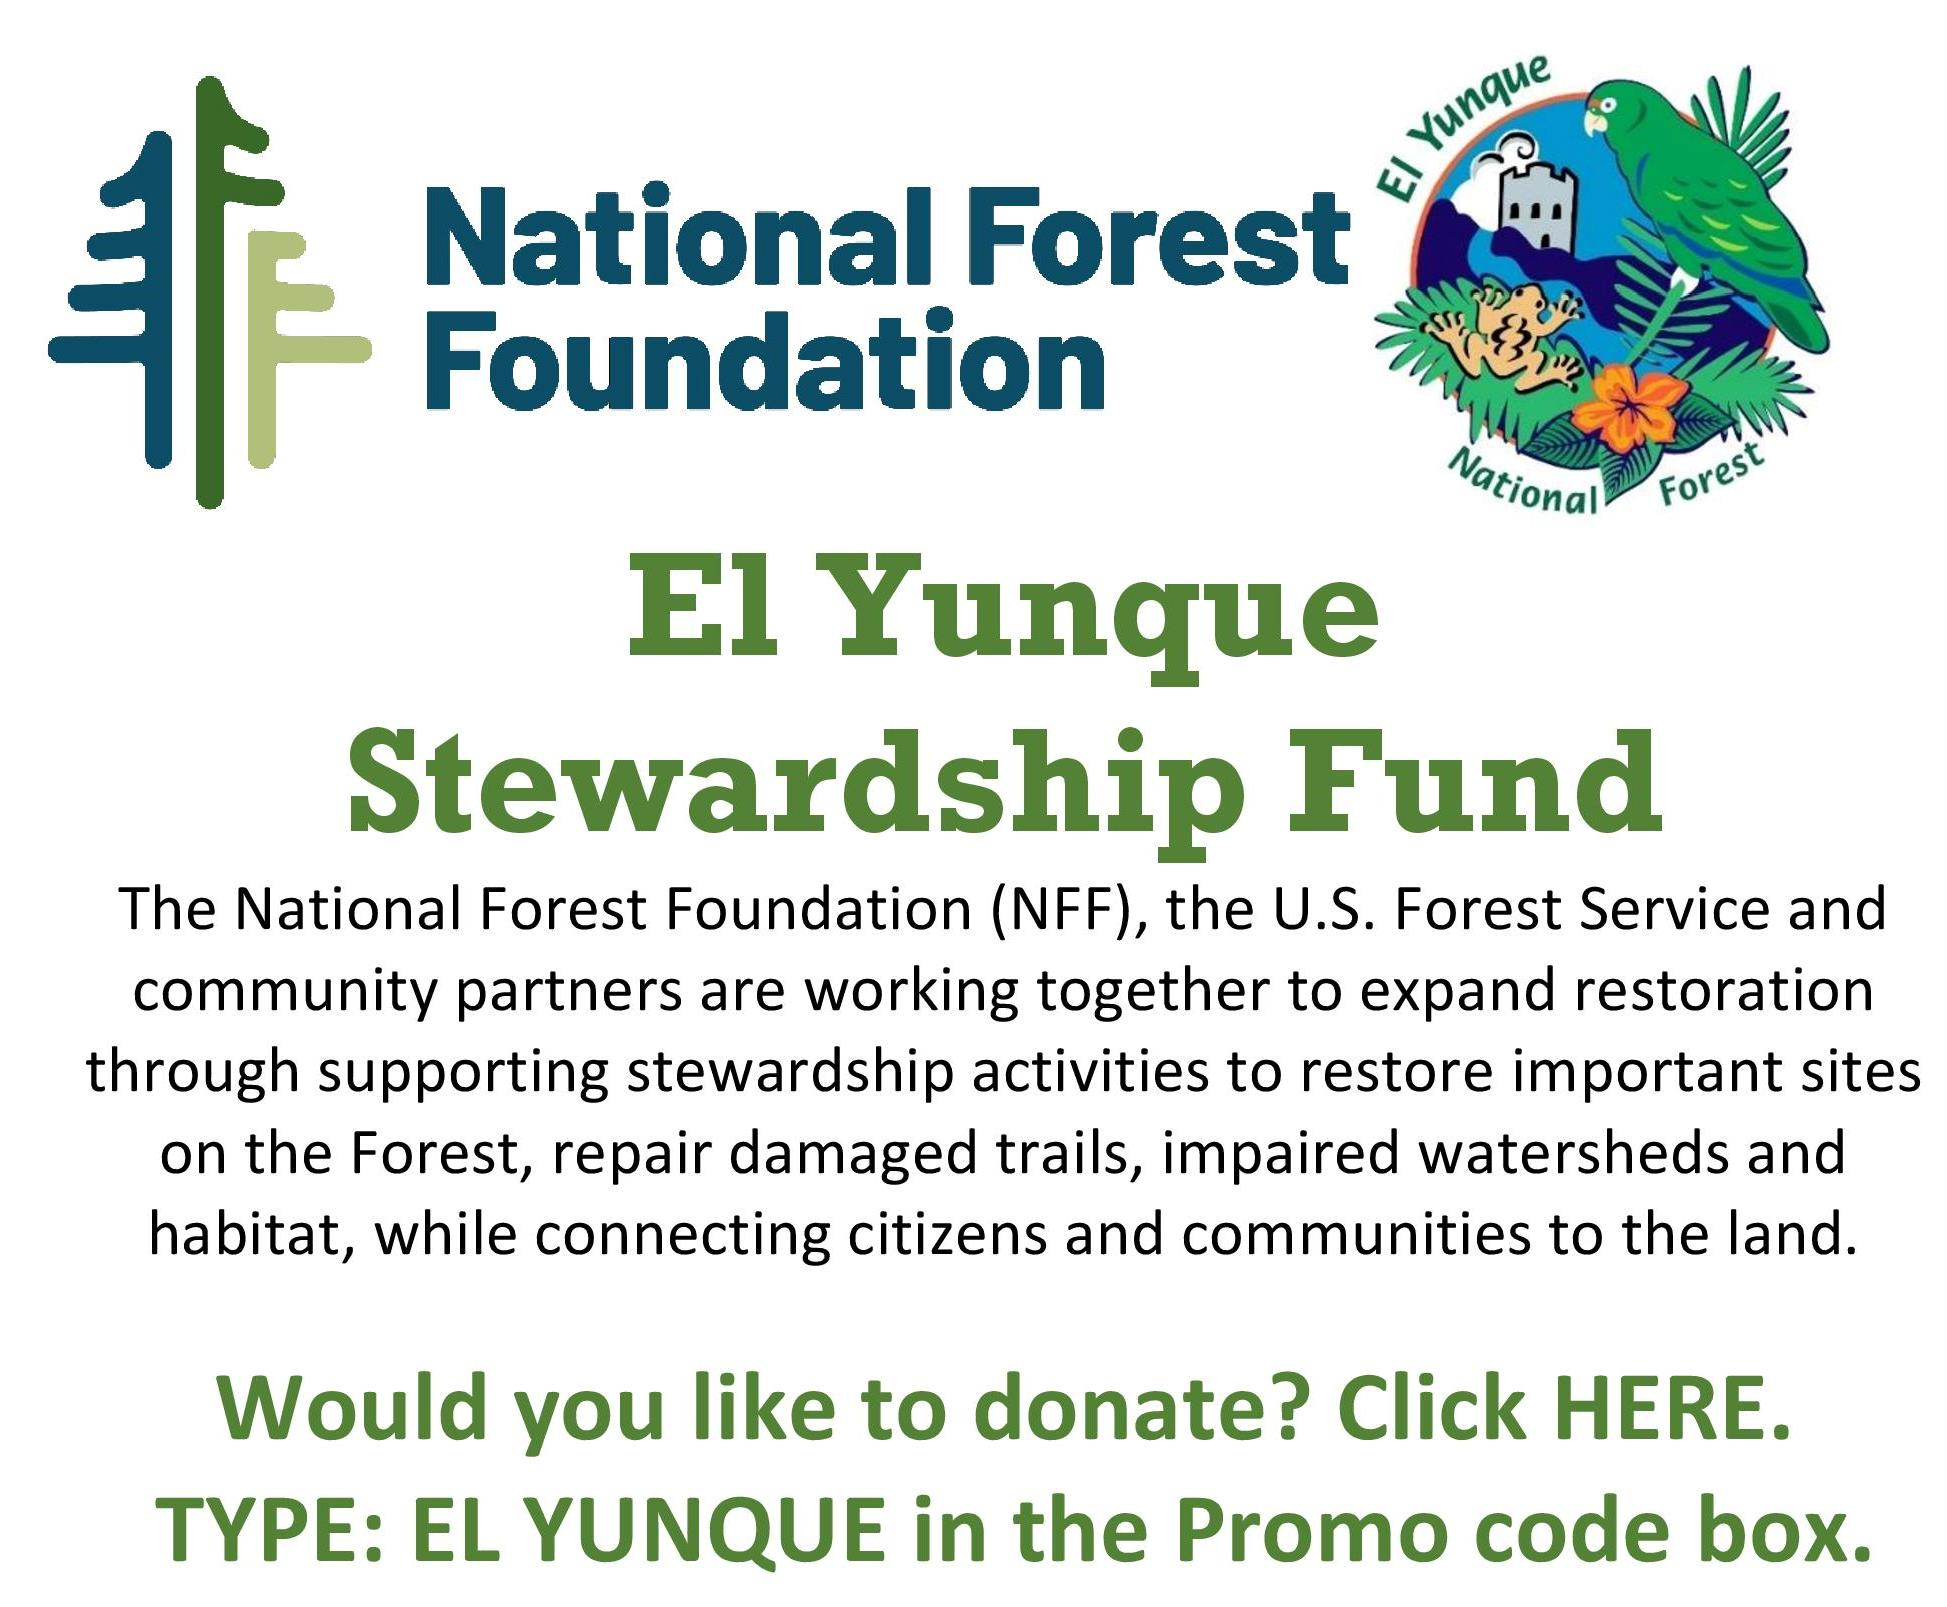 El Yunque Stewardship Fund